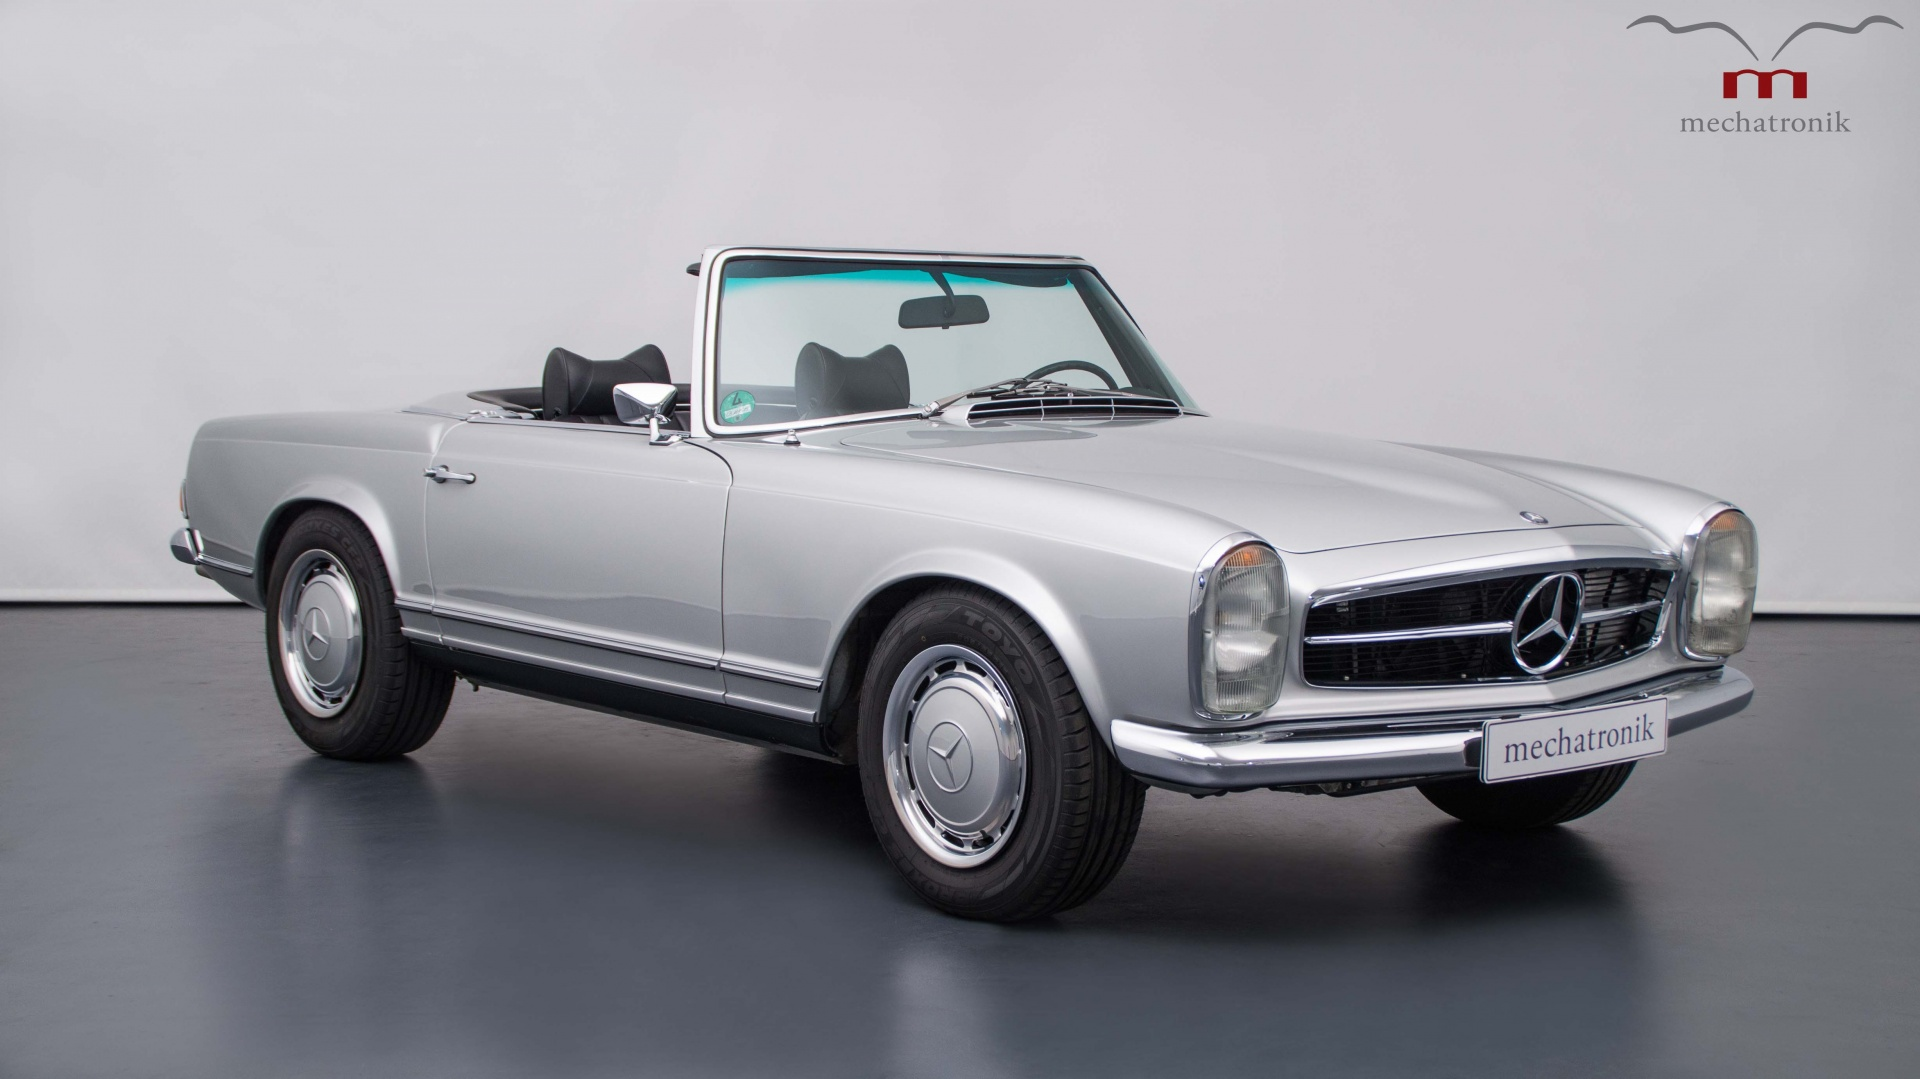 mechatronik is a company located in pleidelsheim germany that builds clic mercedes coupes or sedans with modern powertrains take for example this 1969